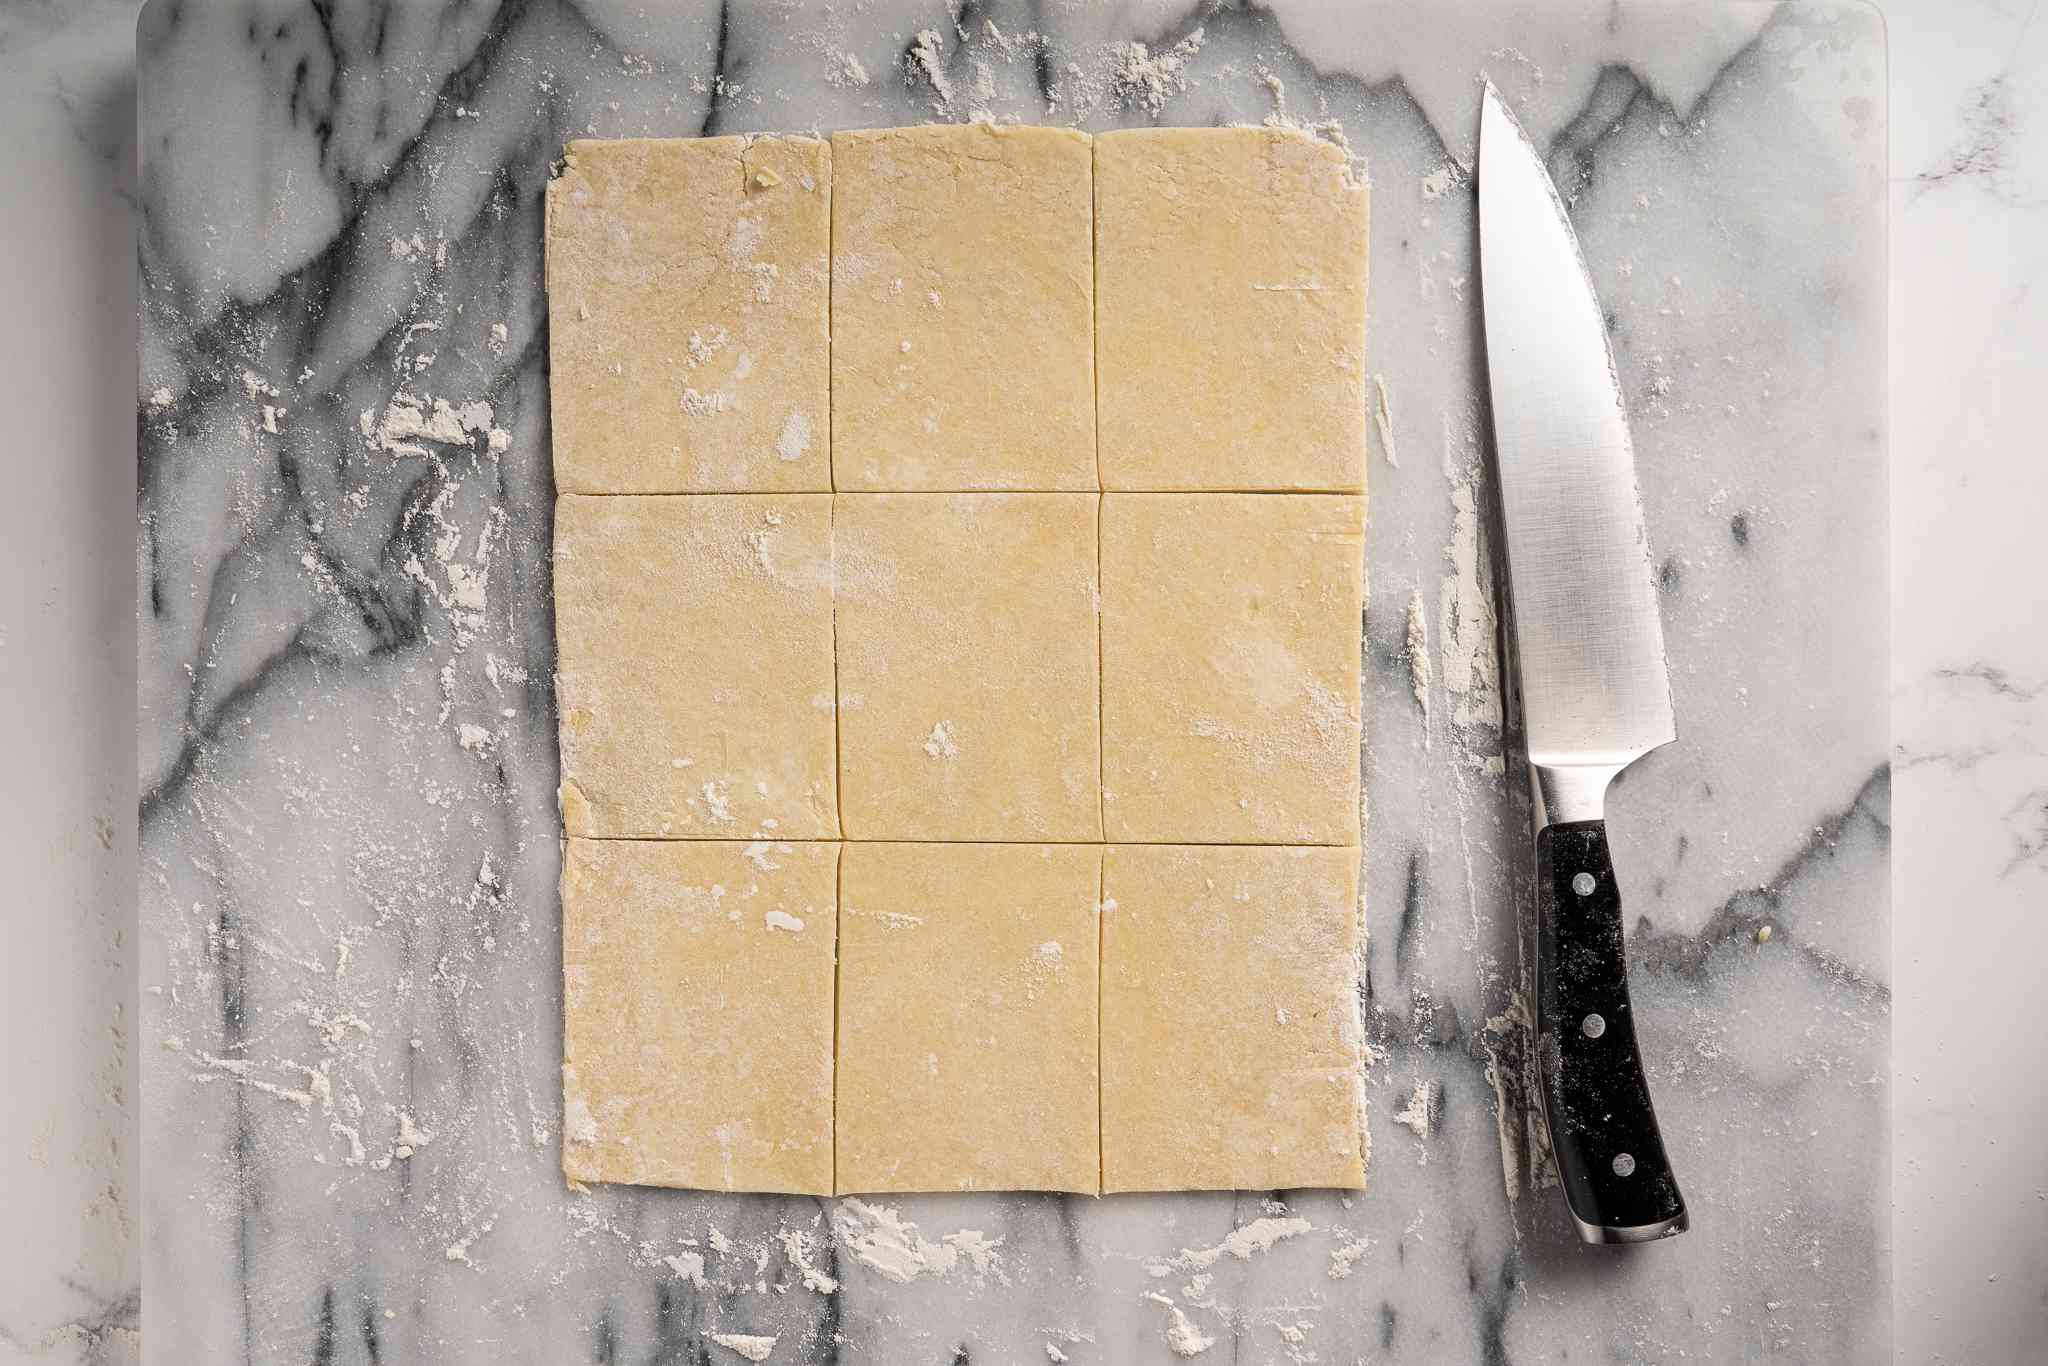 Dough cut into 9 rectangles with a knife